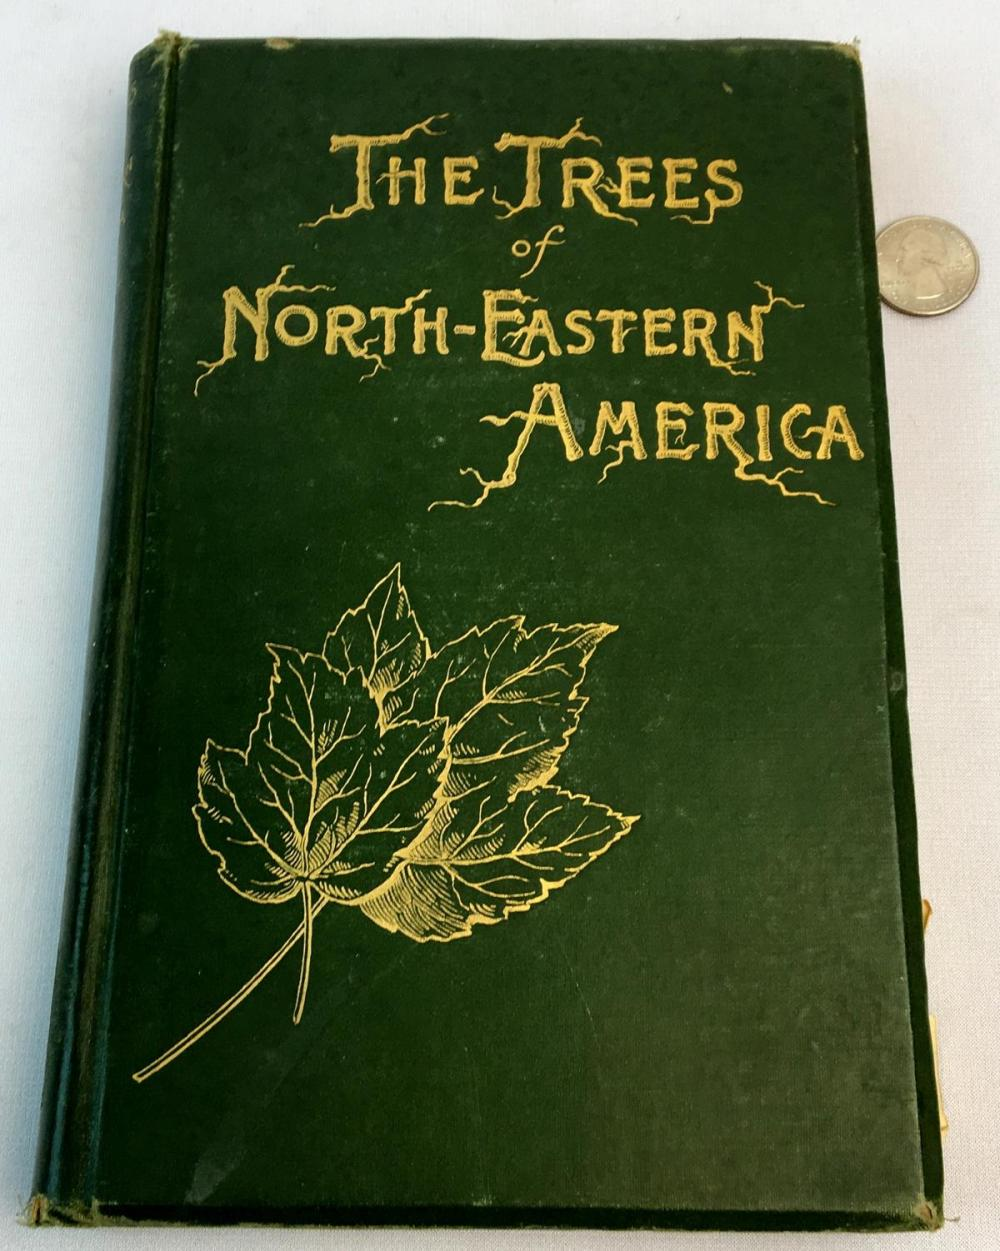 1893 The Trees of Northeastern America by Charles S. Newhall ILLUSTRATED